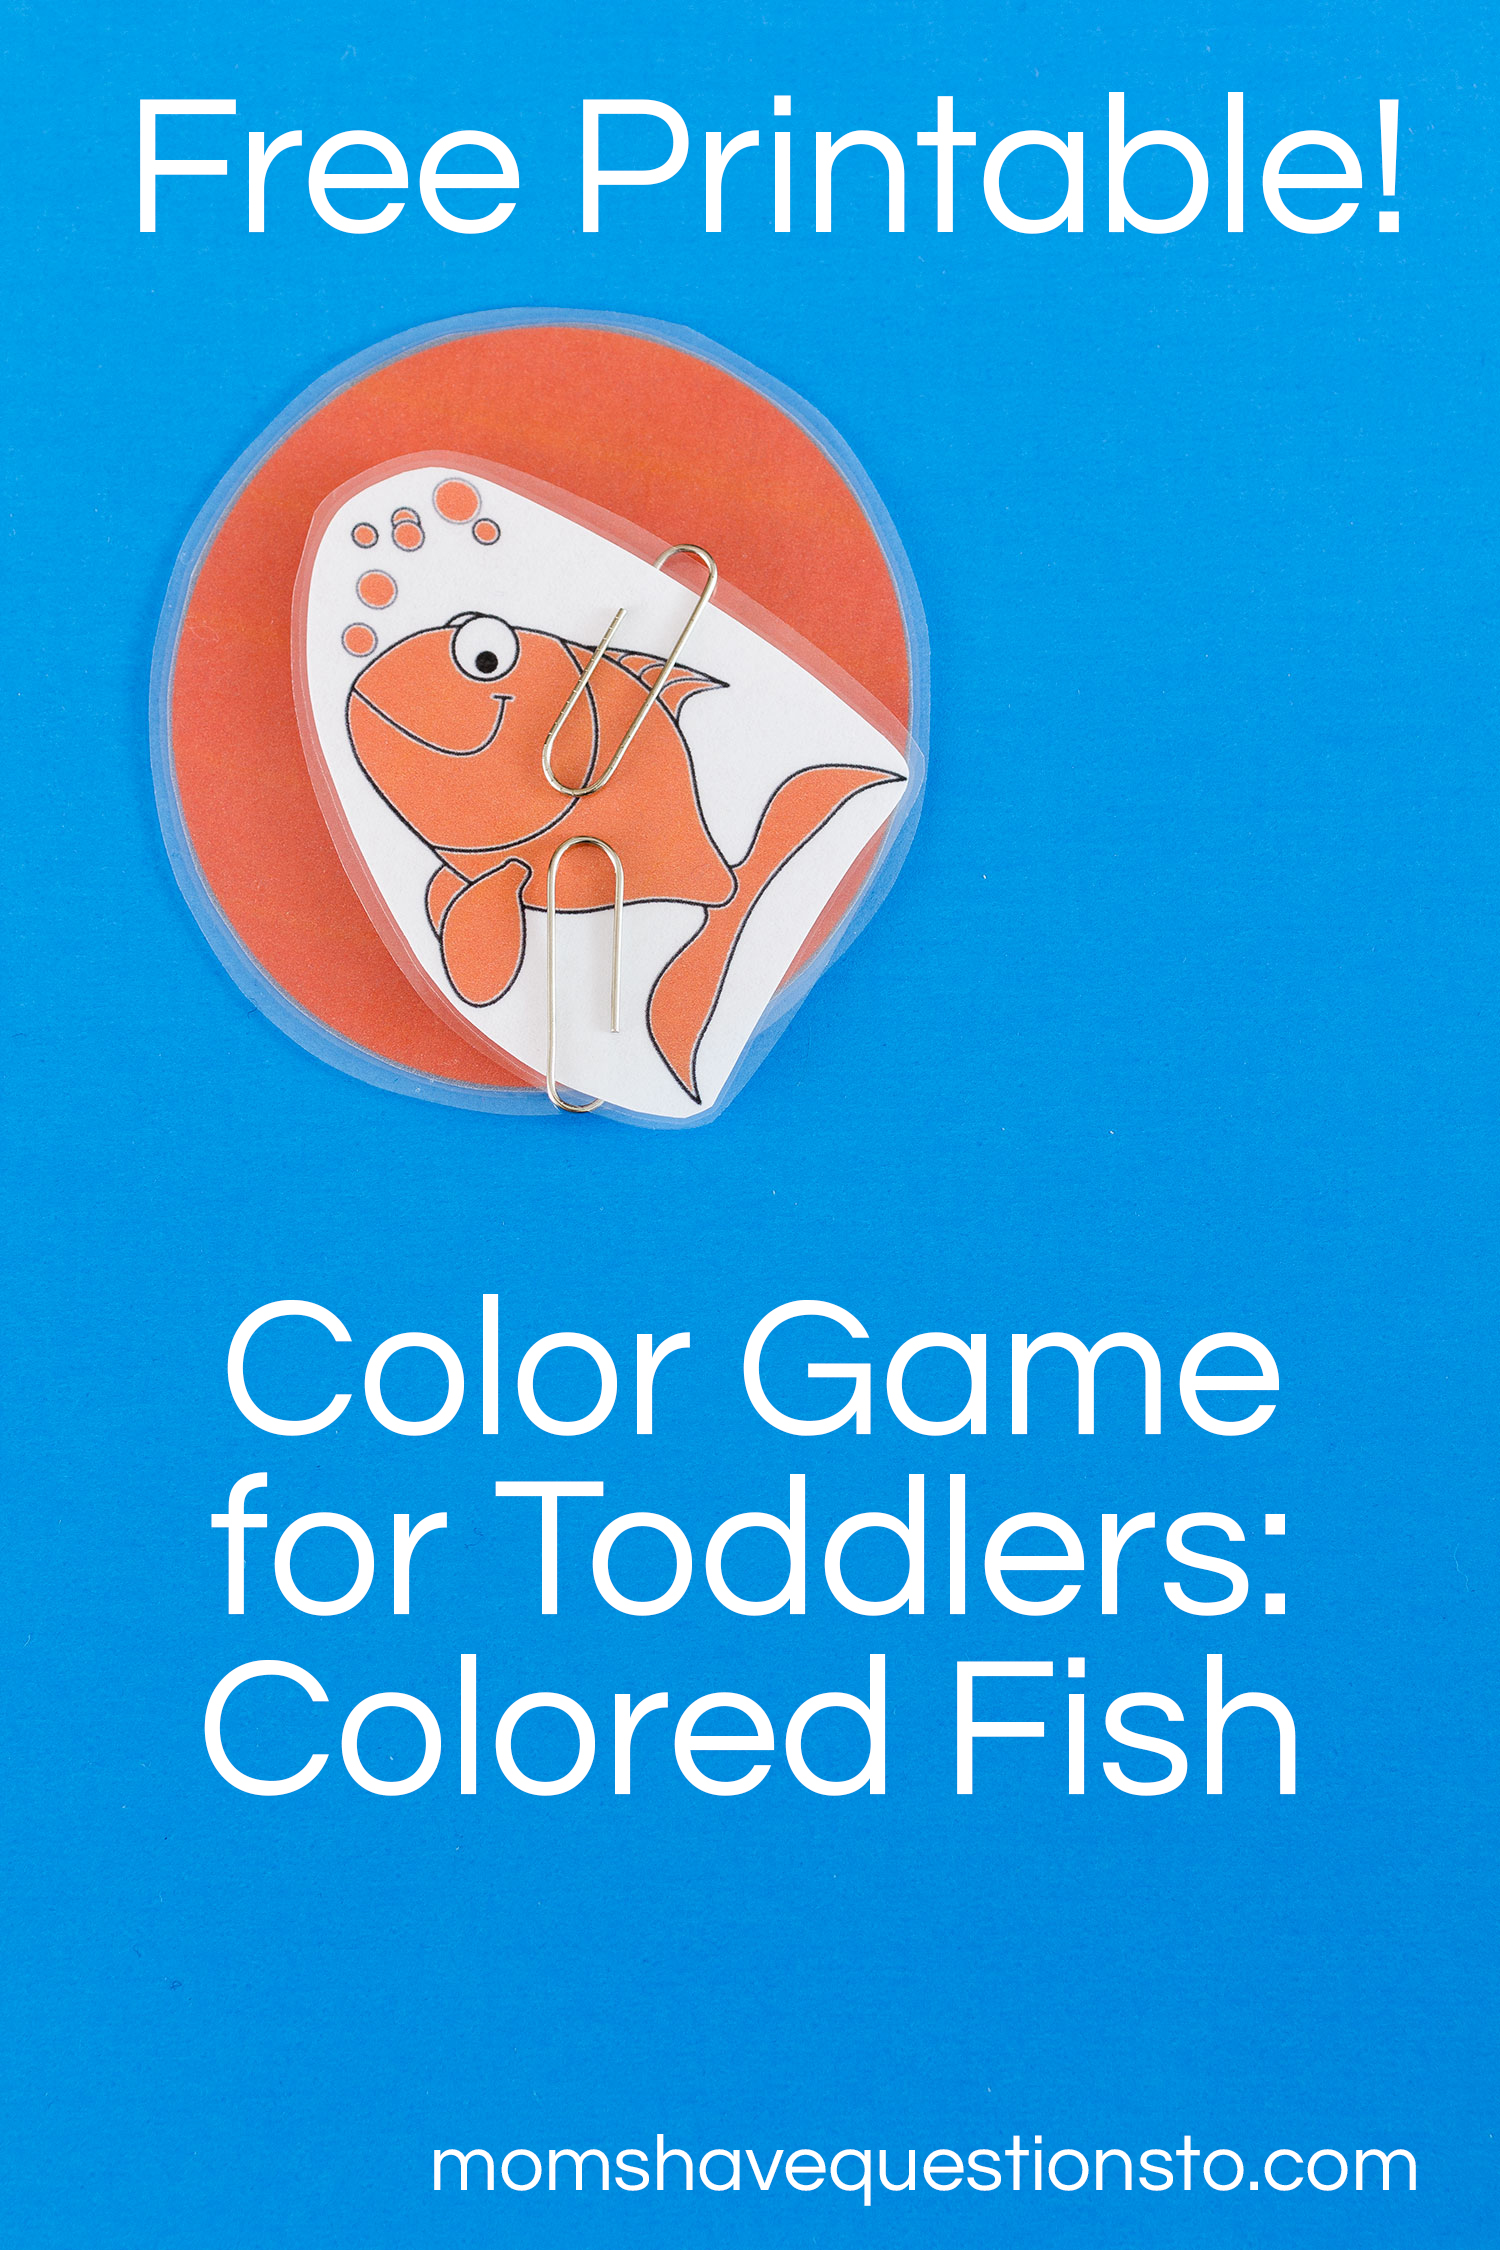 color games for toddlers part 5 colored fishies moms have questions too - Online Color Games For Toddlers